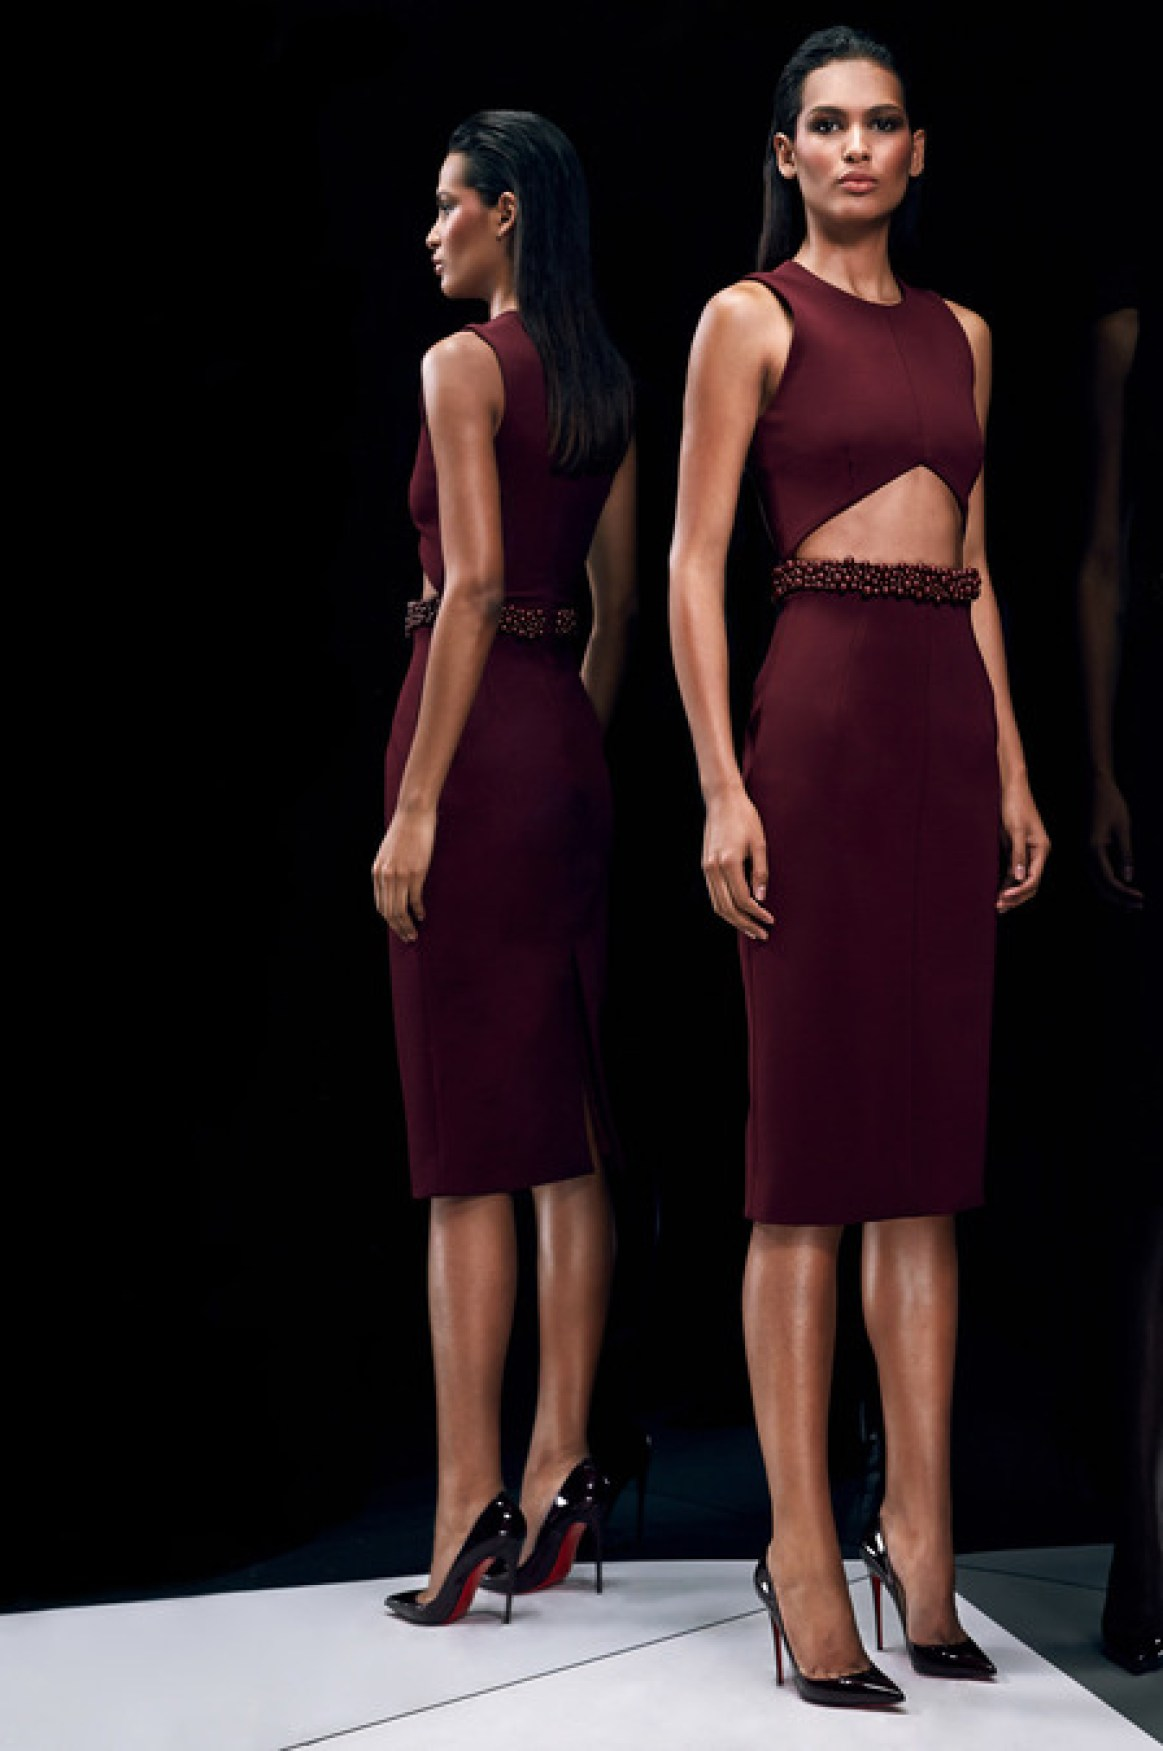 Cushnie-et-Ochs-pre-fall-2014_latest-designer-collections_regal-fashion-trends_delicate-style_high-end-fashion-bloggers-australia_luxury-bloggers-australia_top-fashion-bloggers-australia_best-fashion-editorials_2014_professional-fashion-trends_sexy-office-fashion